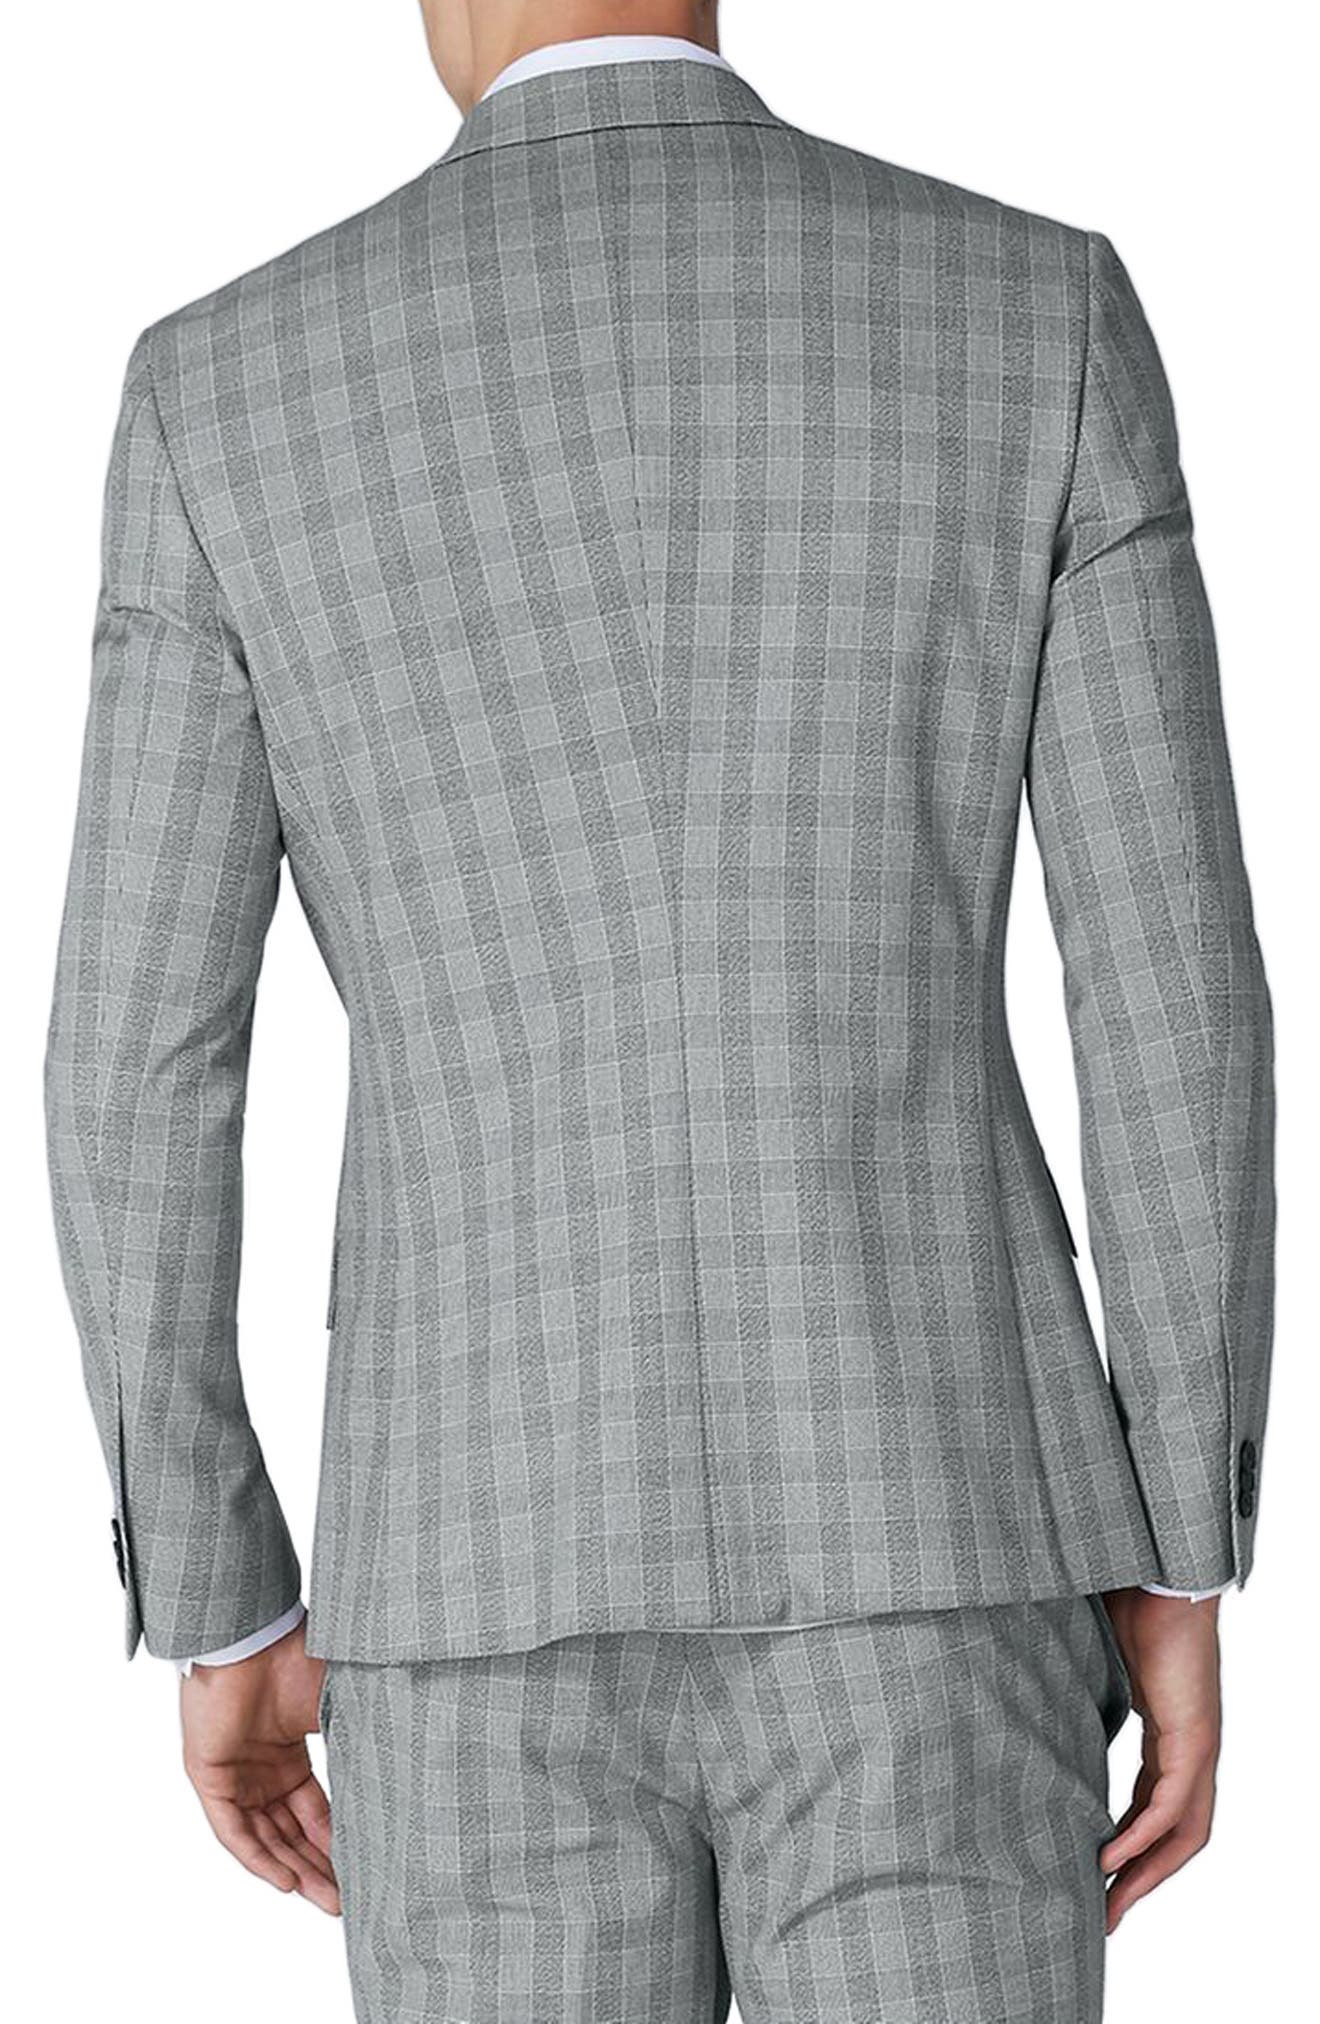 Muscle Fit Check Suit Jacket,                             Alternate thumbnail 3, color,                             Grey